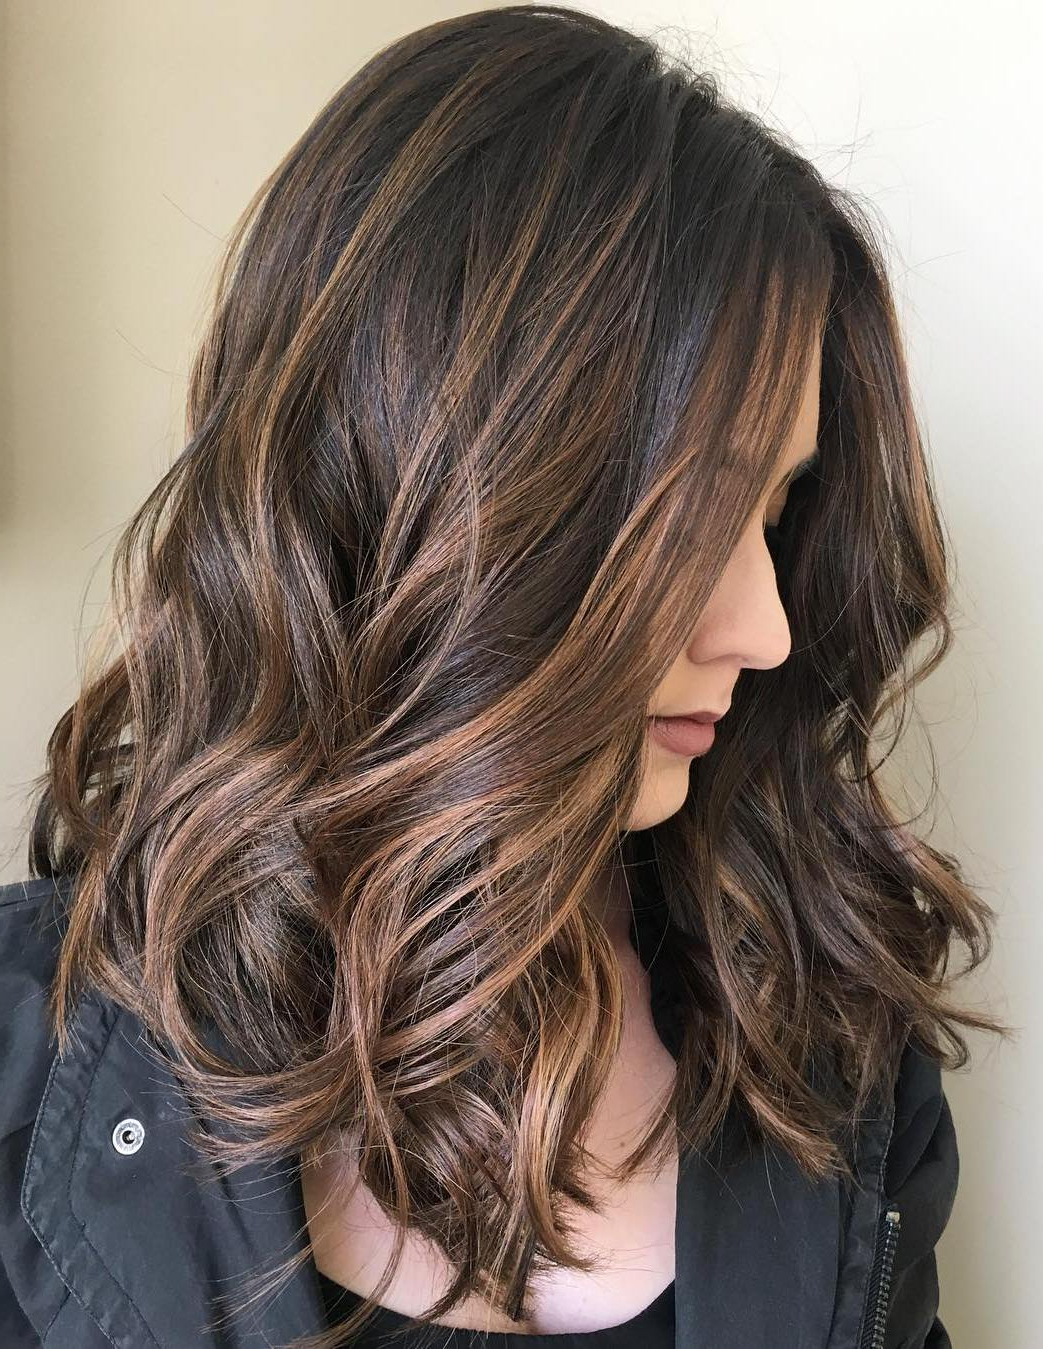 70 Balayage Hair Color Ideas With Blonde, Brown And Caramel Highlights Intended For Most Recent Medium Brown Tones Hairstyles With Subtle Highlights (View 5 of 20)